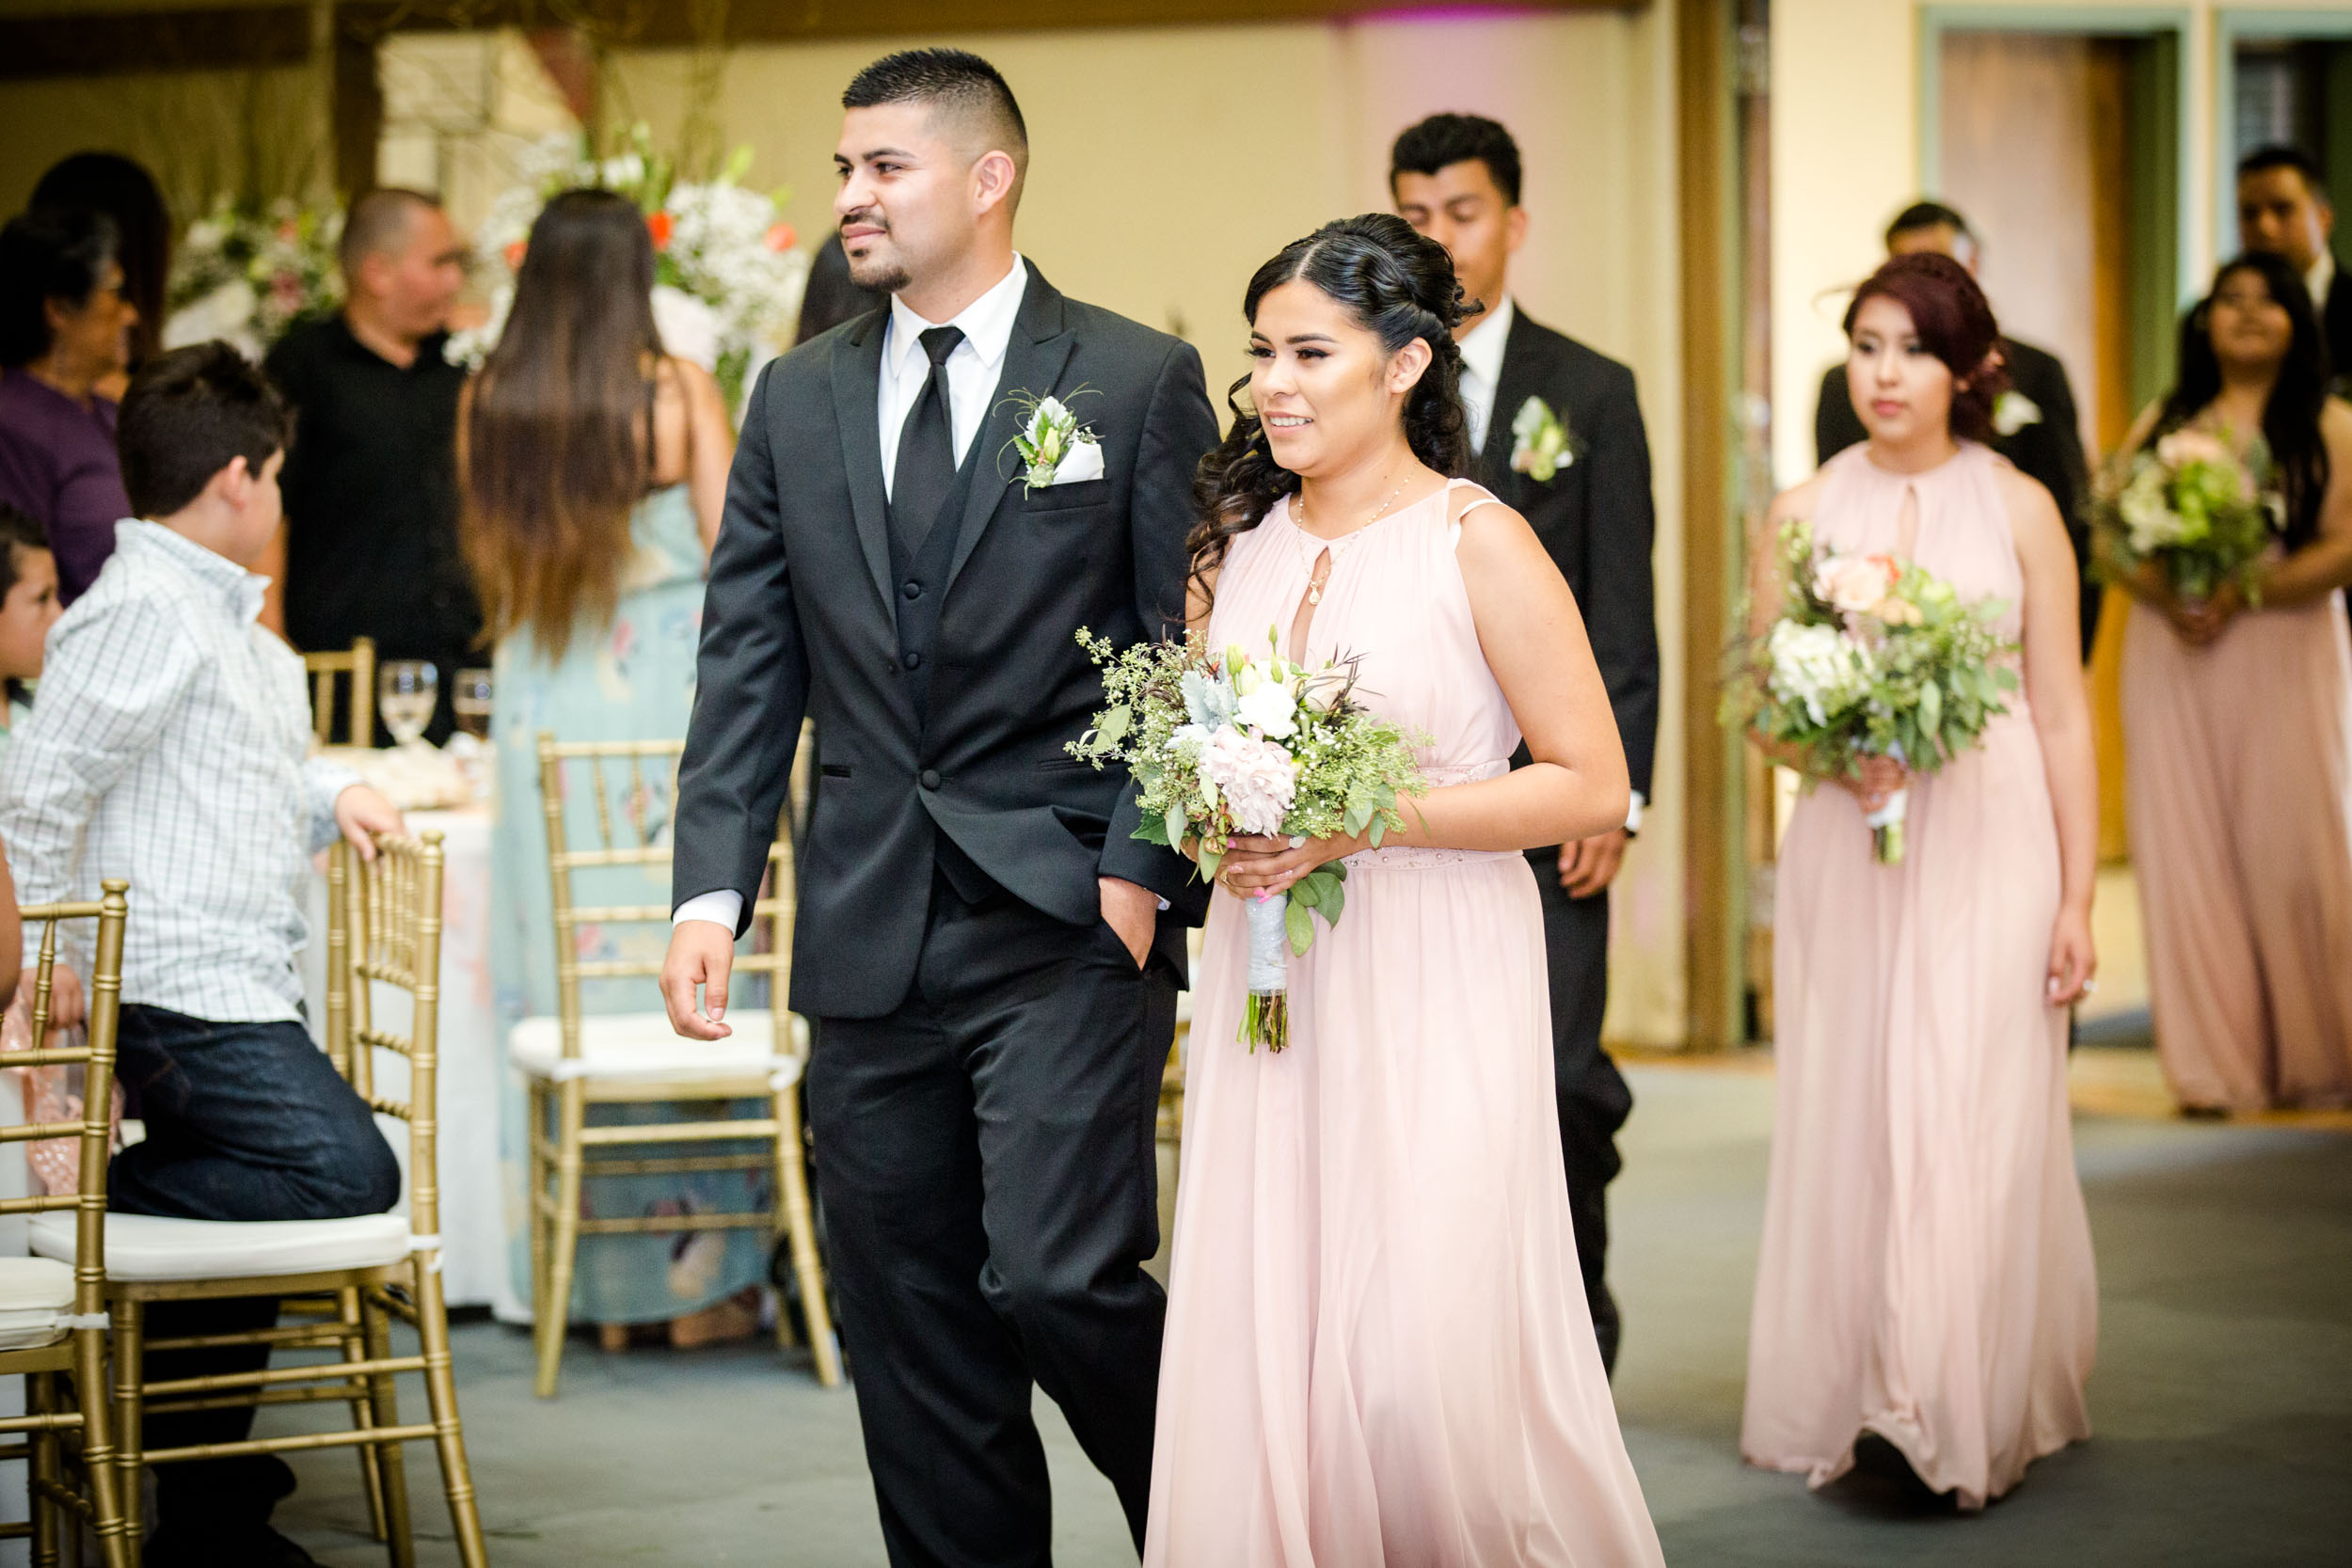 Our Wedding-412